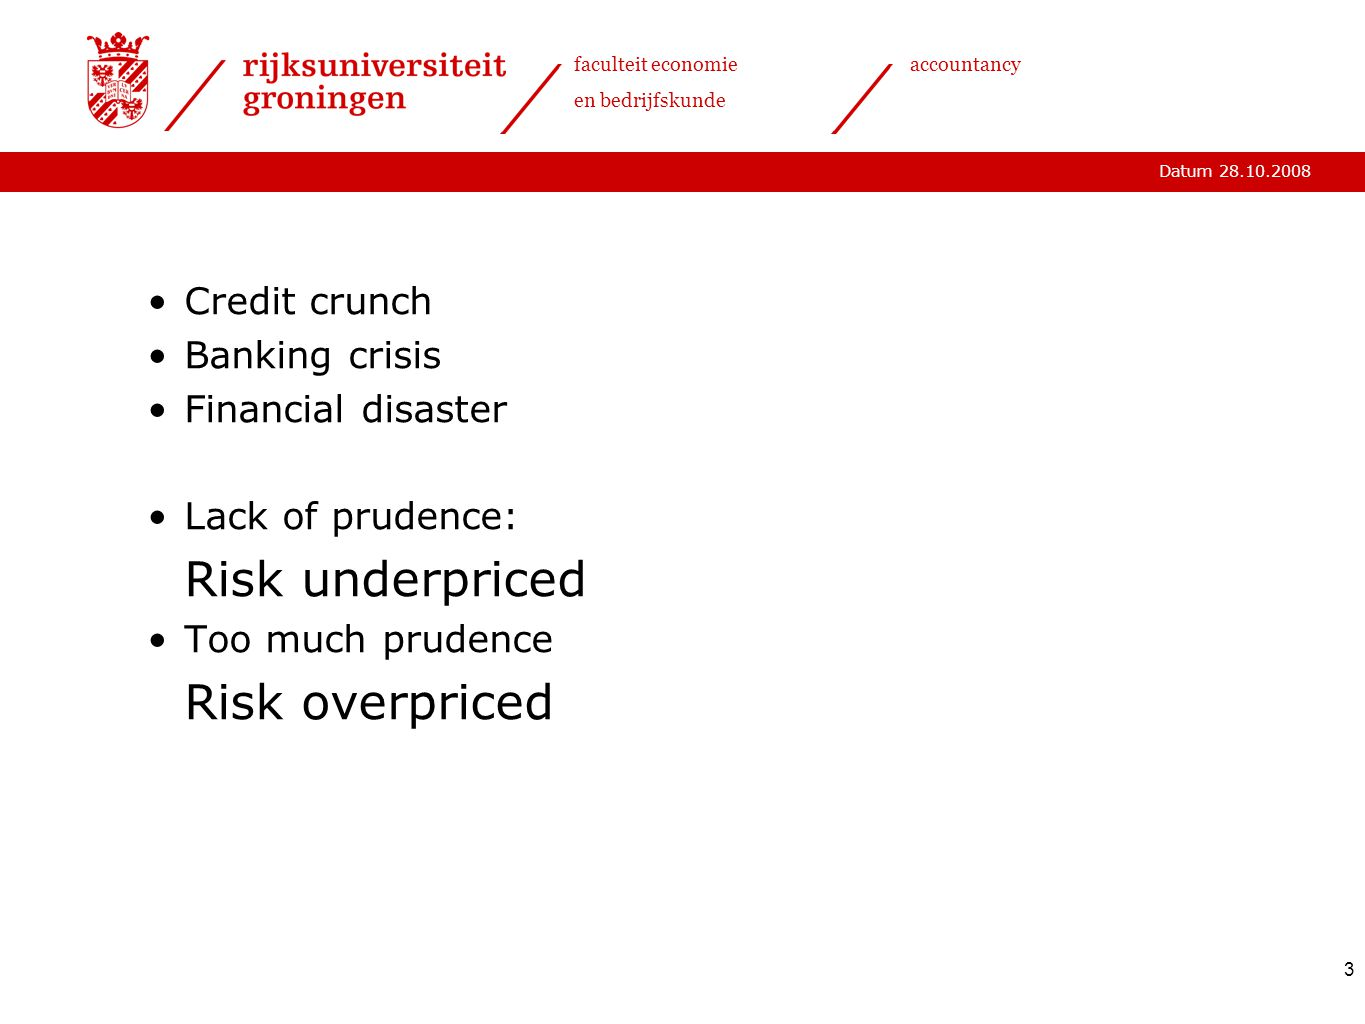 Datum 28.10.2008 faculteit economie en bedrijfskunde accountancy 3 Credit crunch Banking crisis Financial disaster Lack of prudence: Risk underpriced Too much prudence Risk overpriced